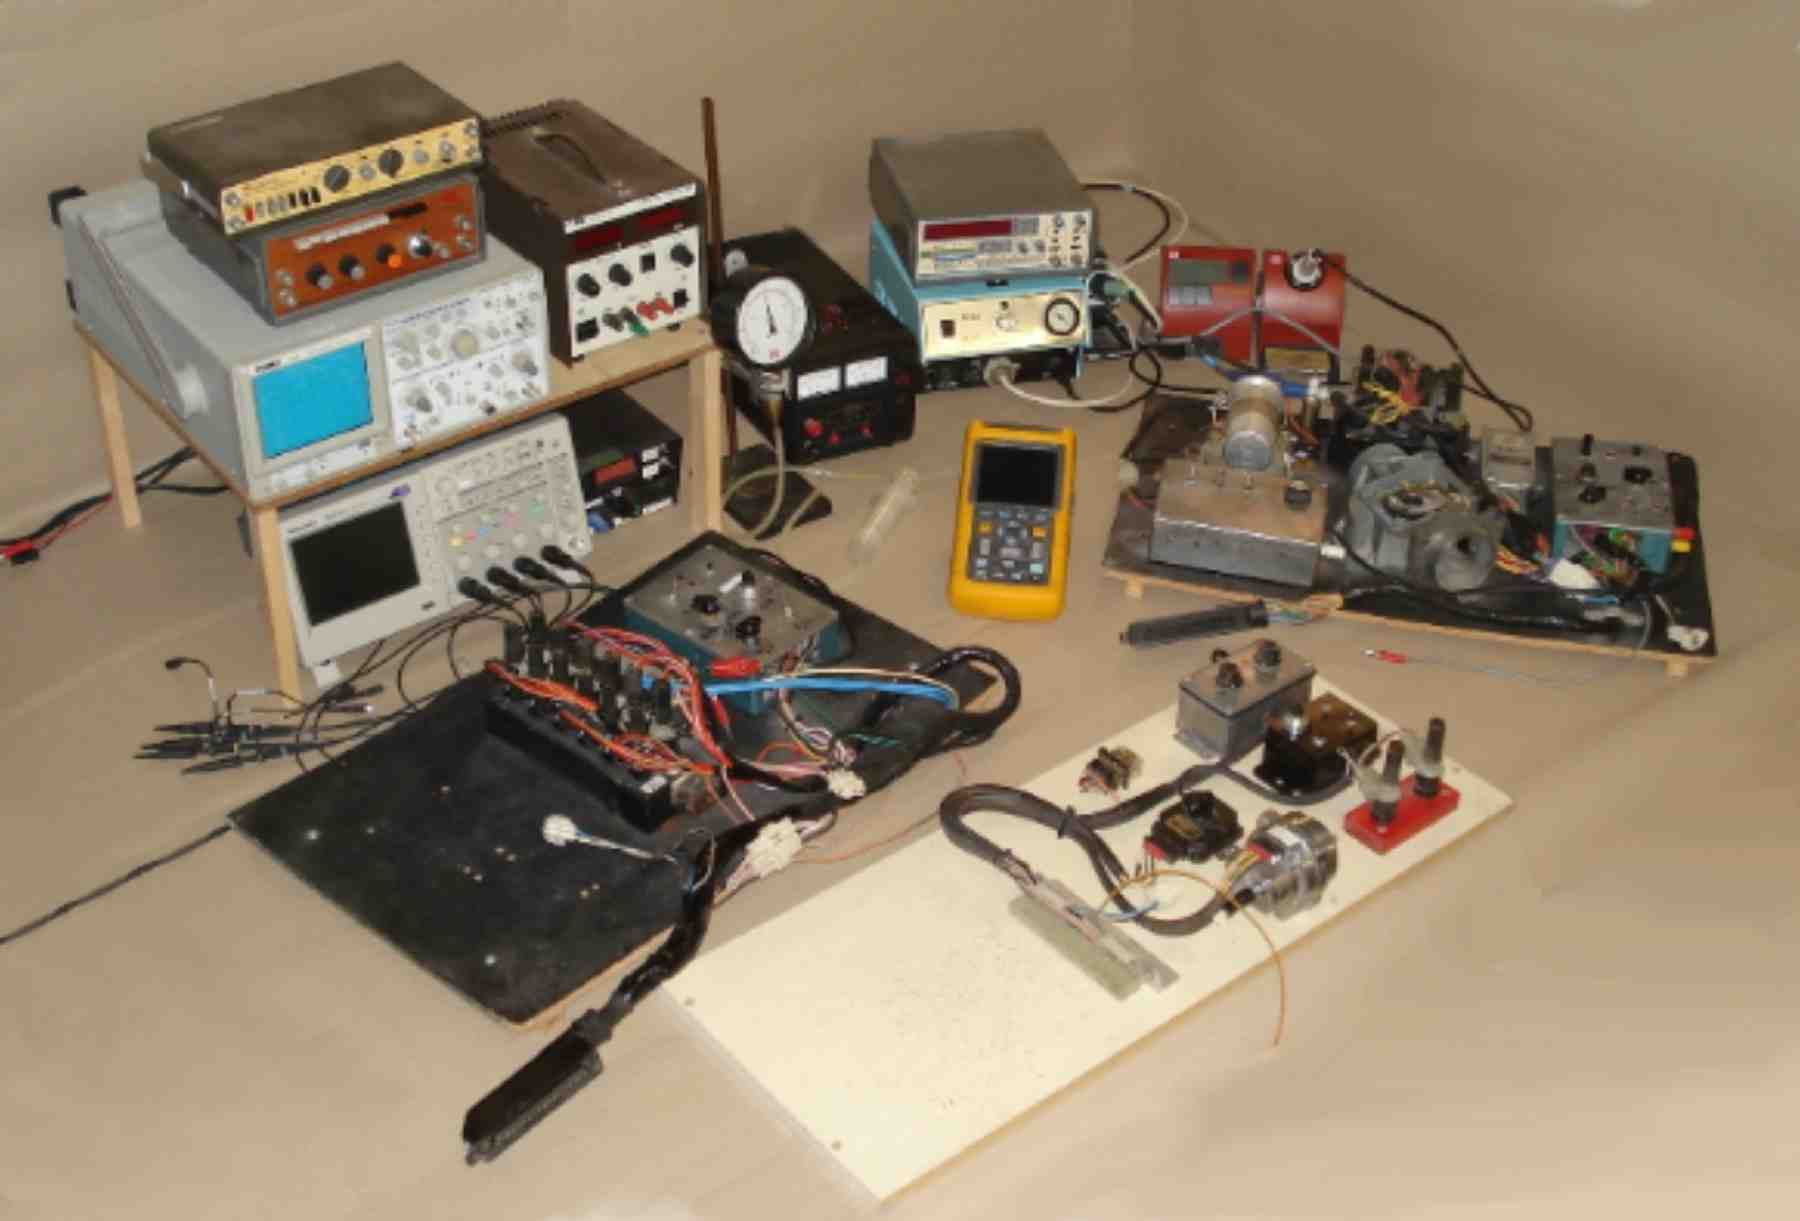 Fig. 15. Test boards, instrumentation and equipment for ECU testing, repairs and upgrades.